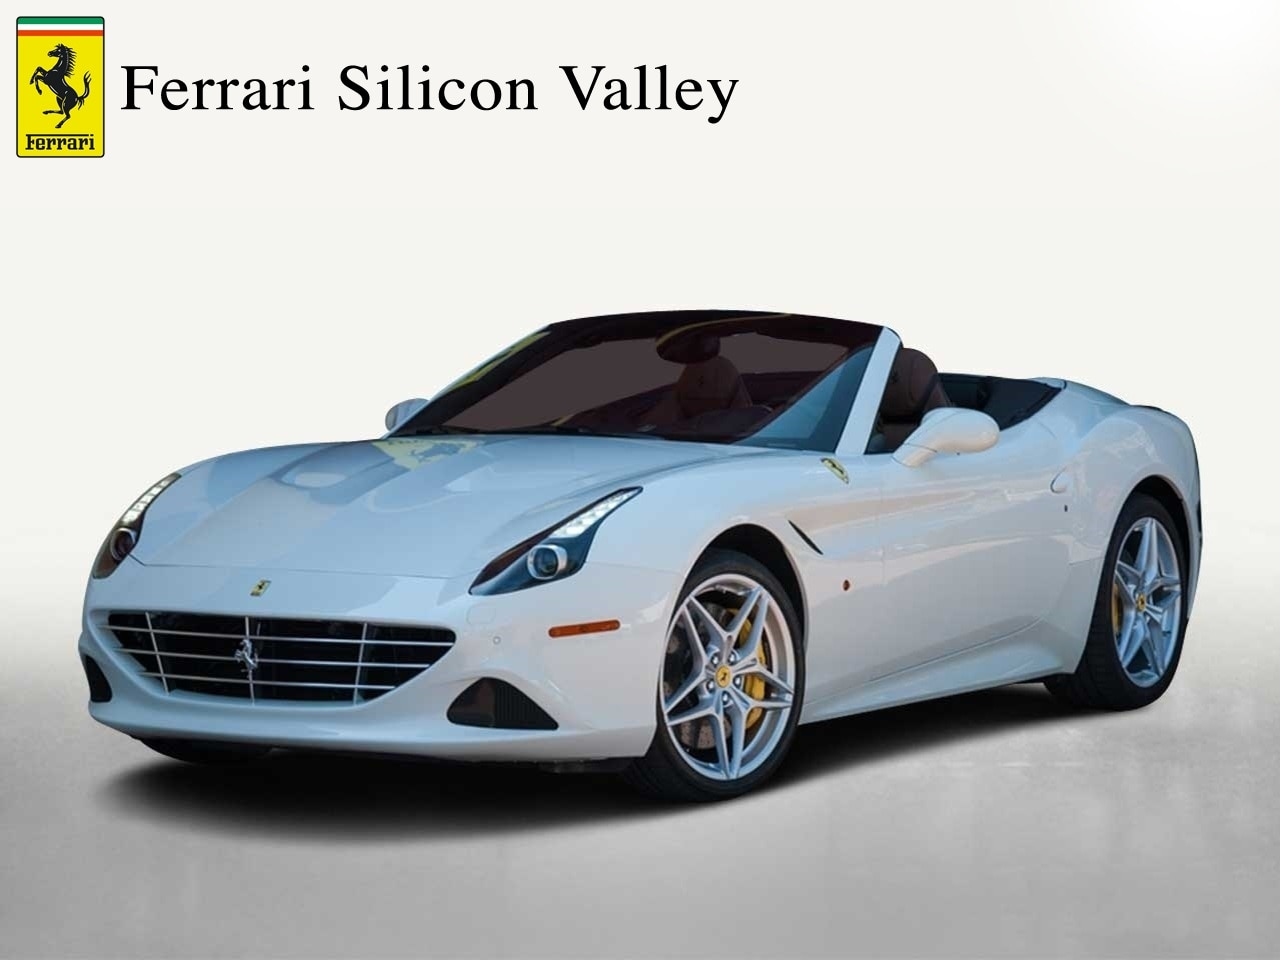 Certified Pre-Owned 2016 Ferrari California T Convertible For Sale Torrance, California